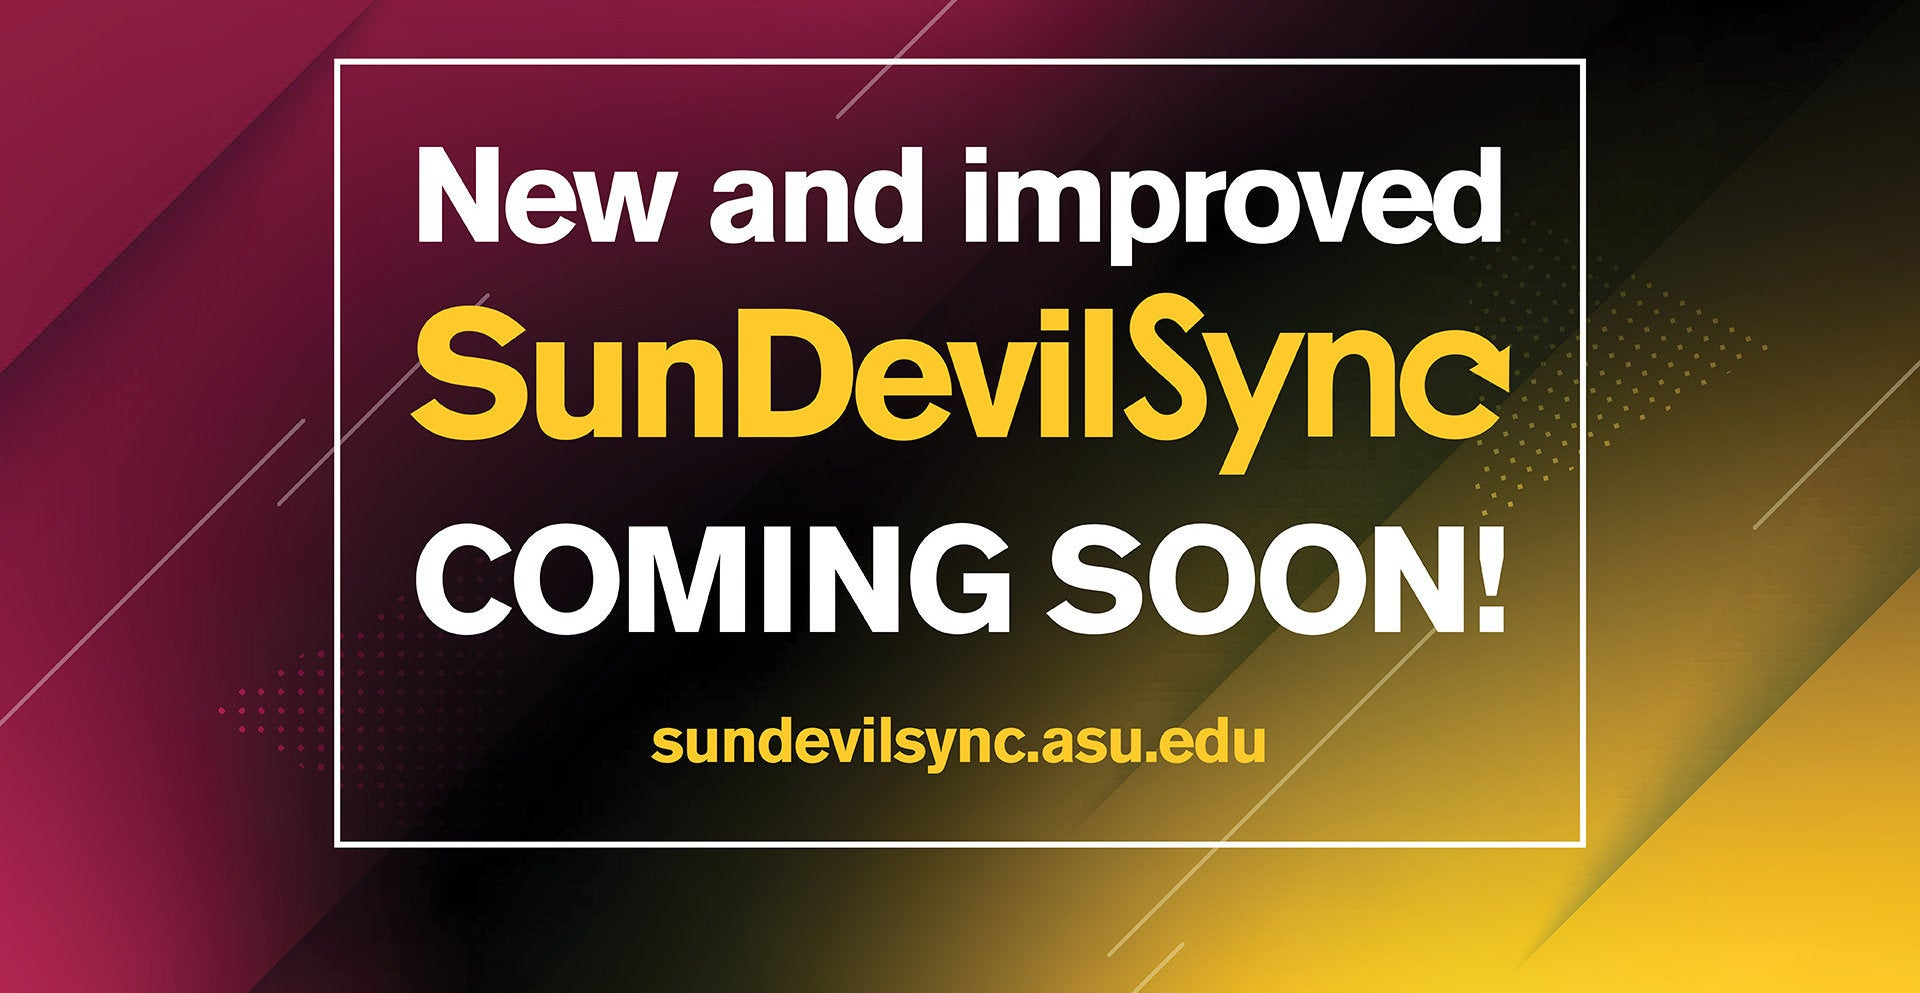 Note saying that the new and improved SunDevilSync site is coming soon at sundevilsync.asu.edu